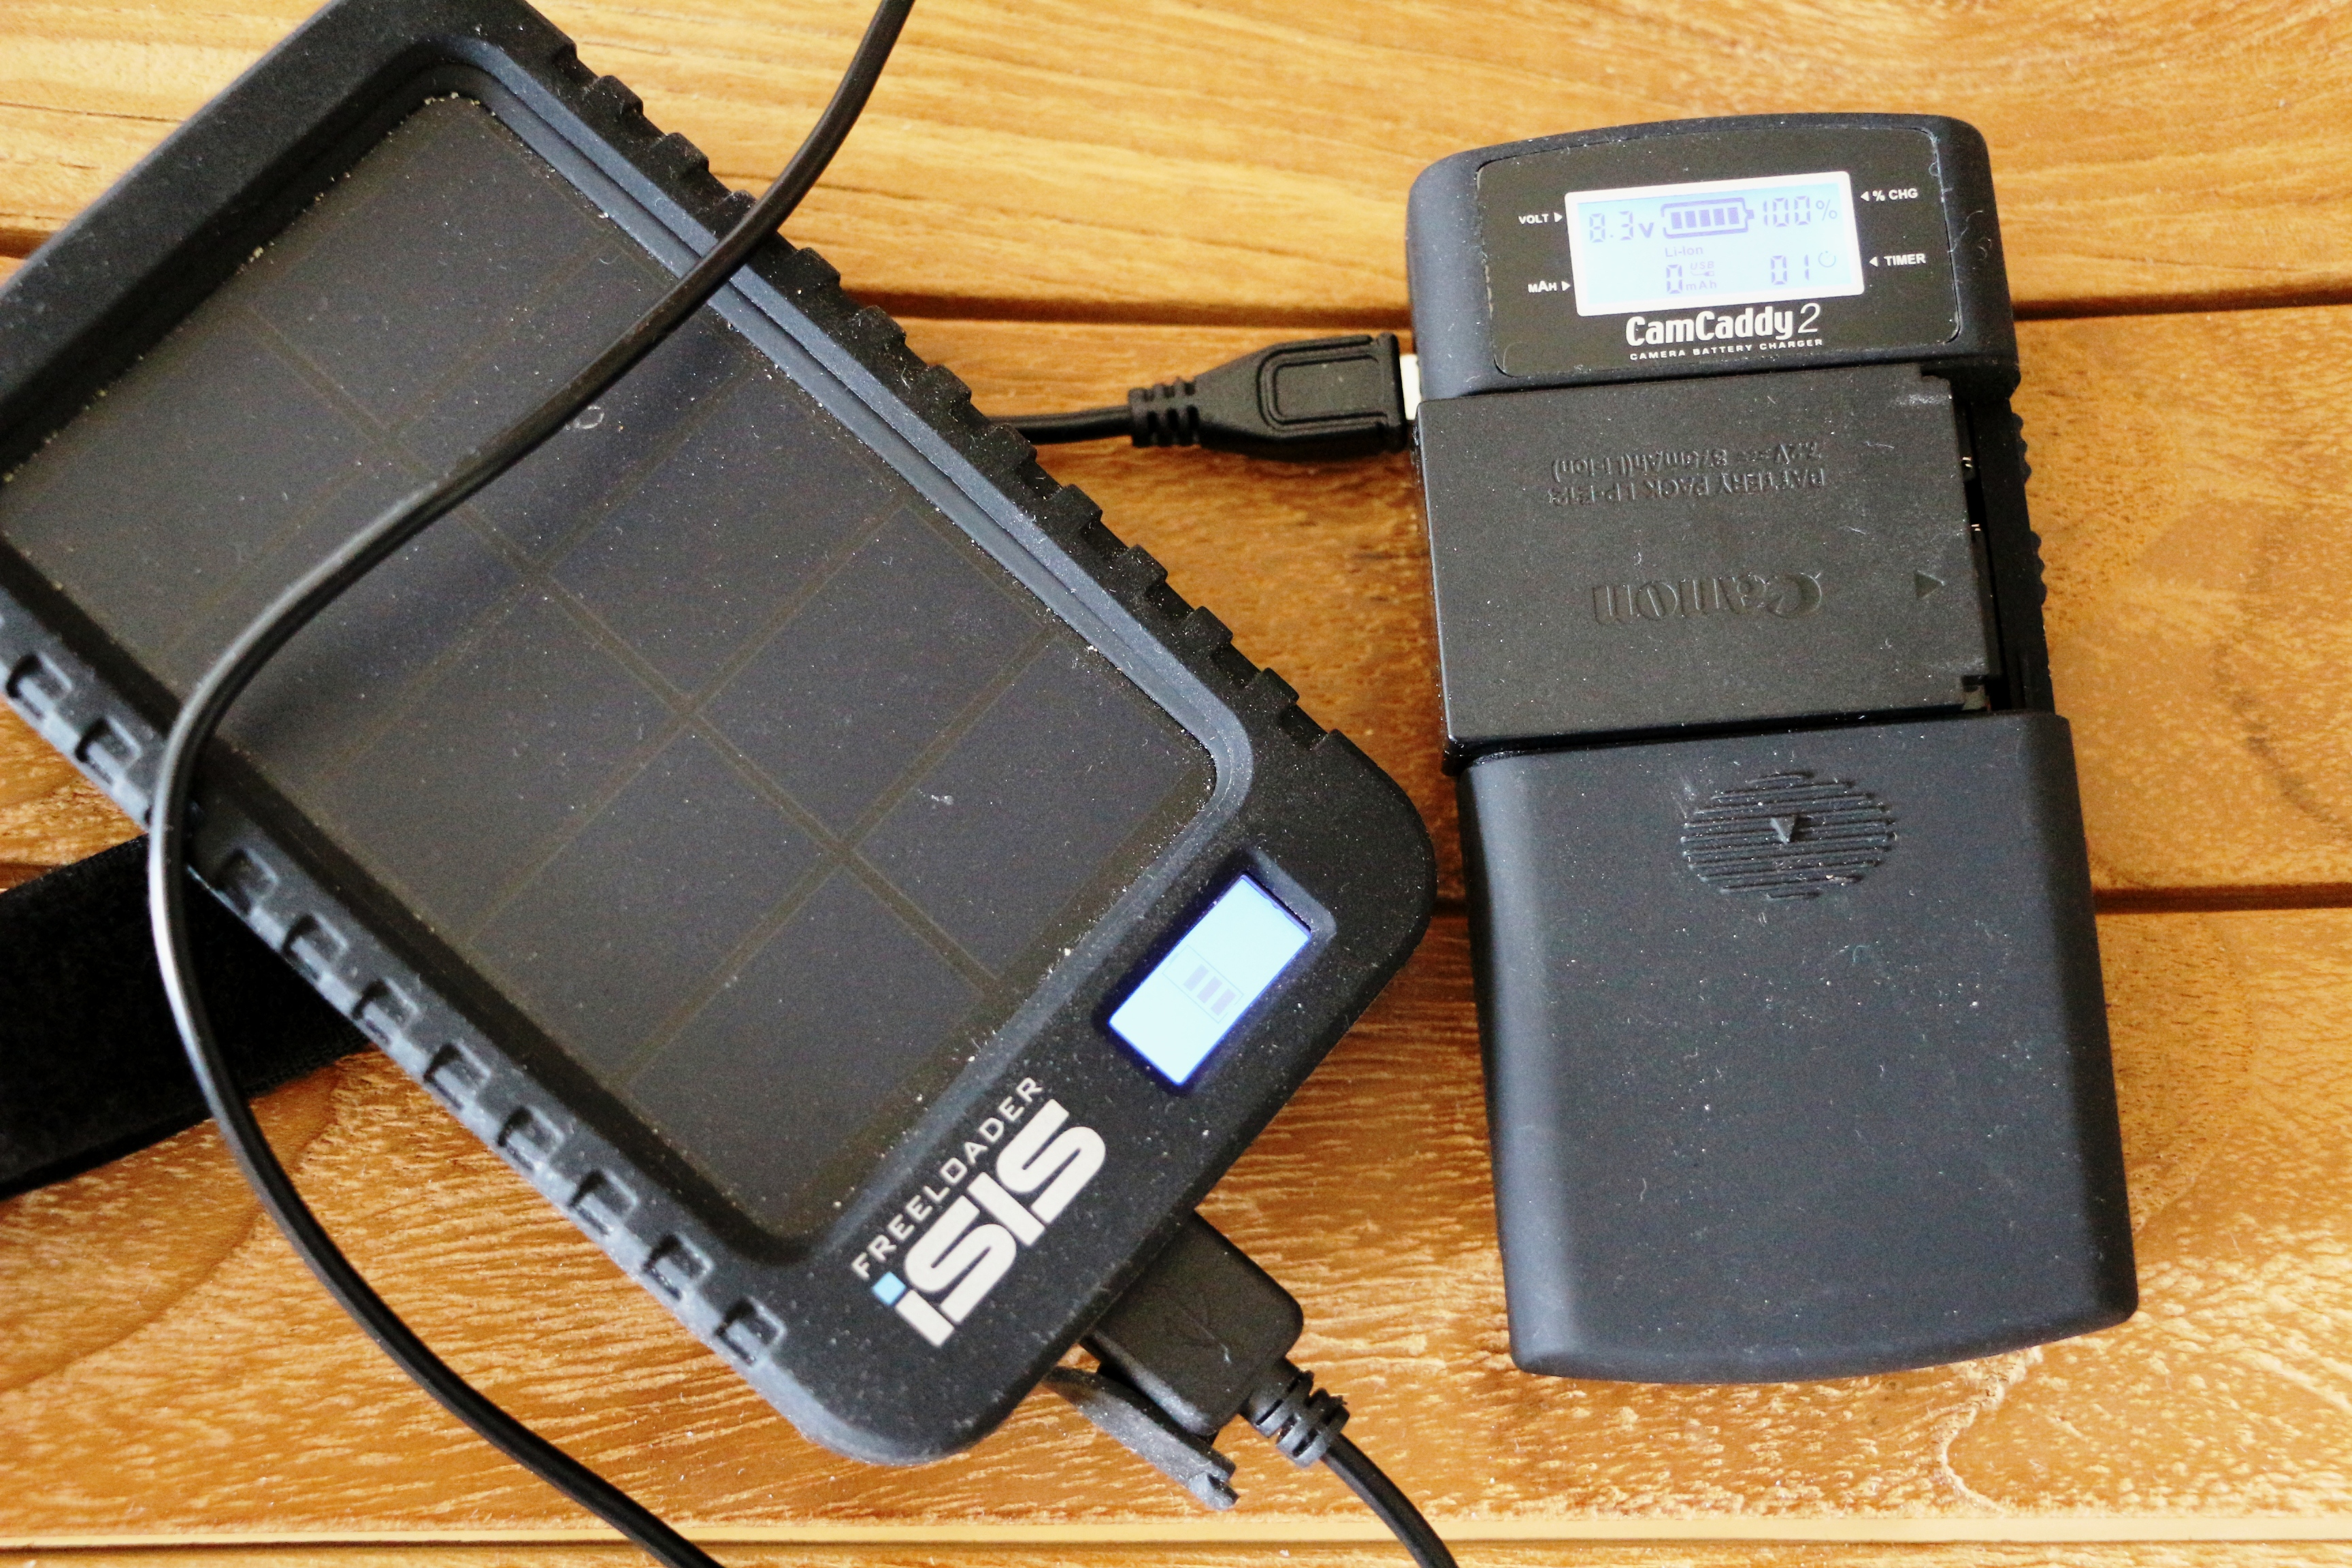 chargeur solaire globetrotter camcaddy